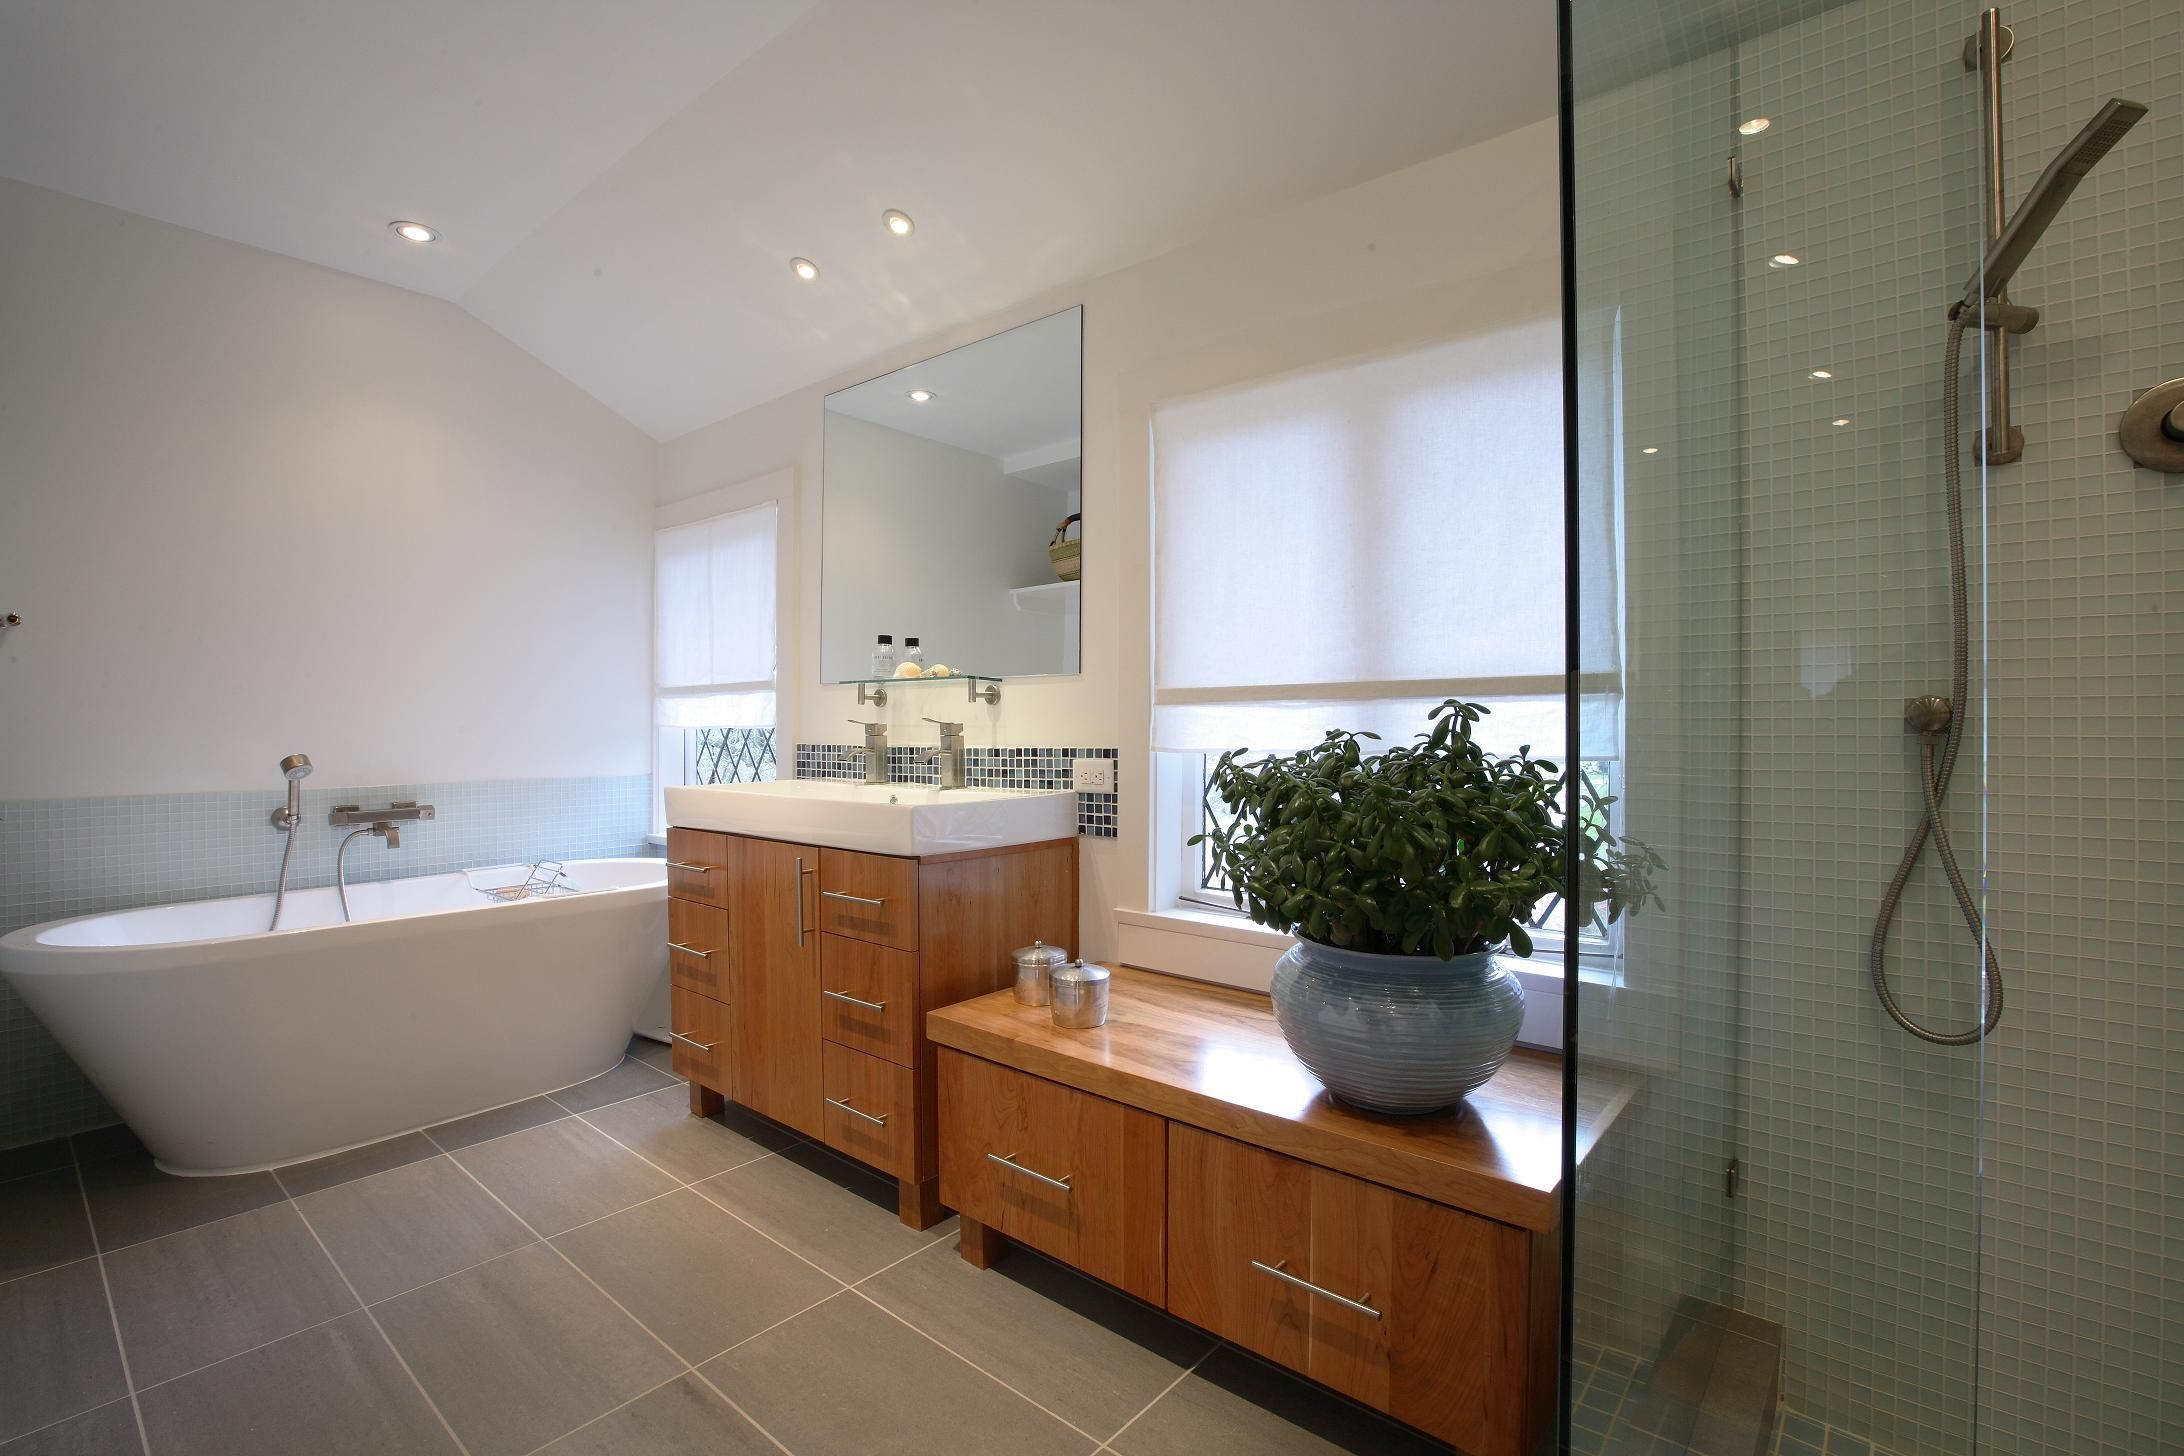 Interior How To Renovate A Bathroom stylish pictures of renovated bathrooms 27 photographs home modern bathroom renovations with brown wooden floating vanity white top and oval bathtub corner glass shower room bathroom